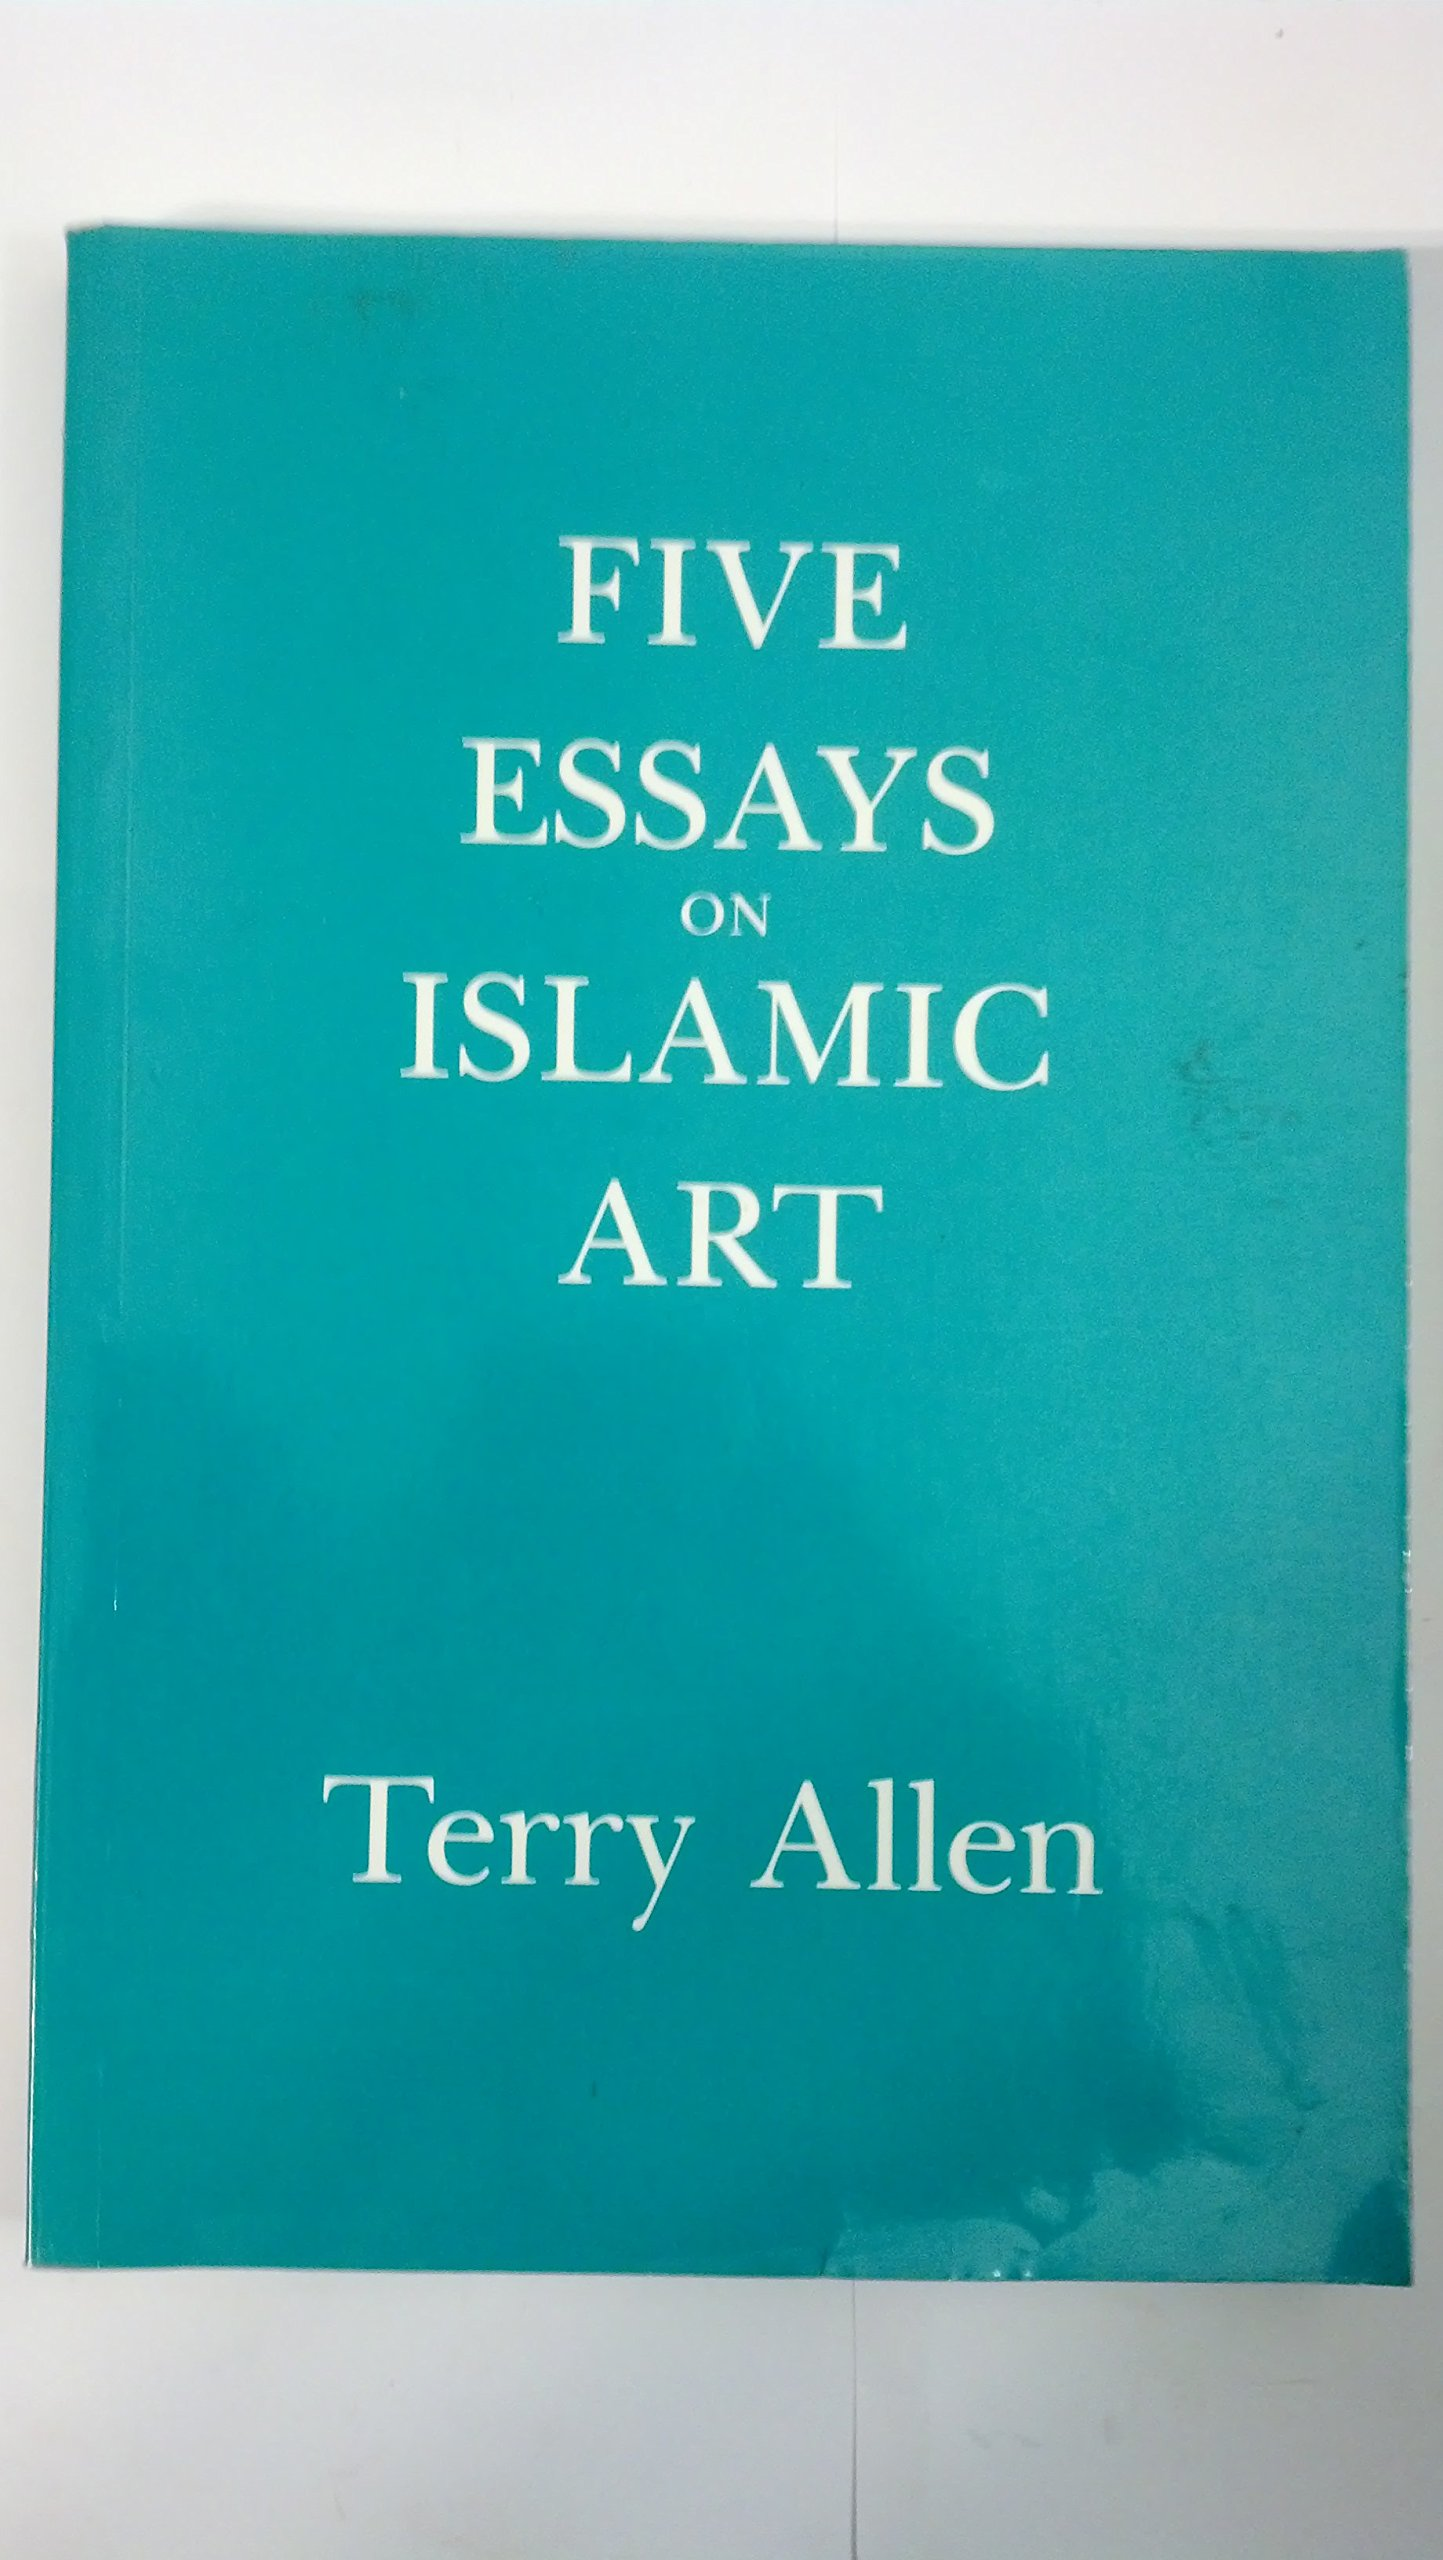 Companies That Help Write Business Plans Five Essays On Islamic Art Terry Allen  Amazoncom Books Research Essay Topics For High School Students also Business Letter Writing Services In Simi Valley2c California Five Essays On Islamic Art Terry Allen  Amazoncom  Essays In English